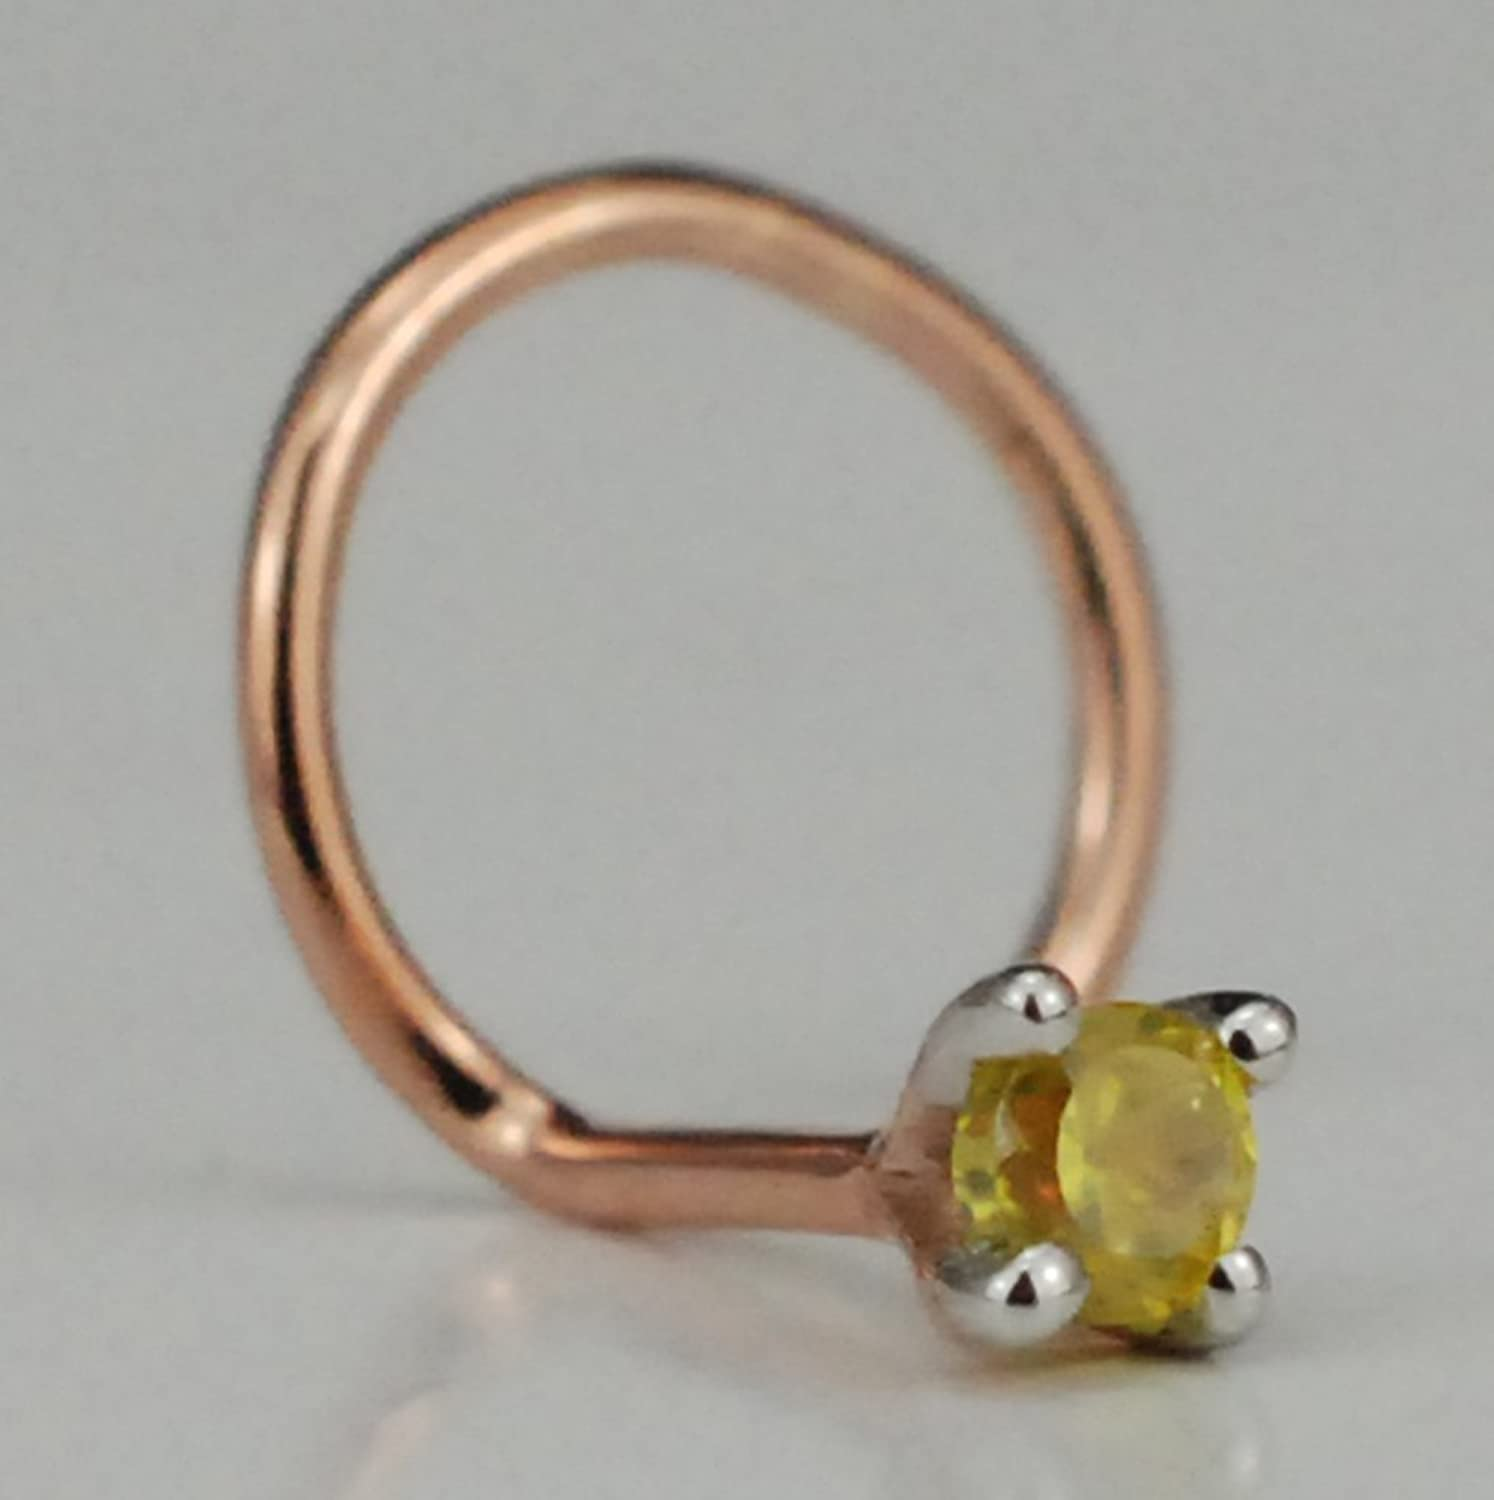 1.5mm Colored Stone and 14K Rose Gold (HallMarked) Nose Ring